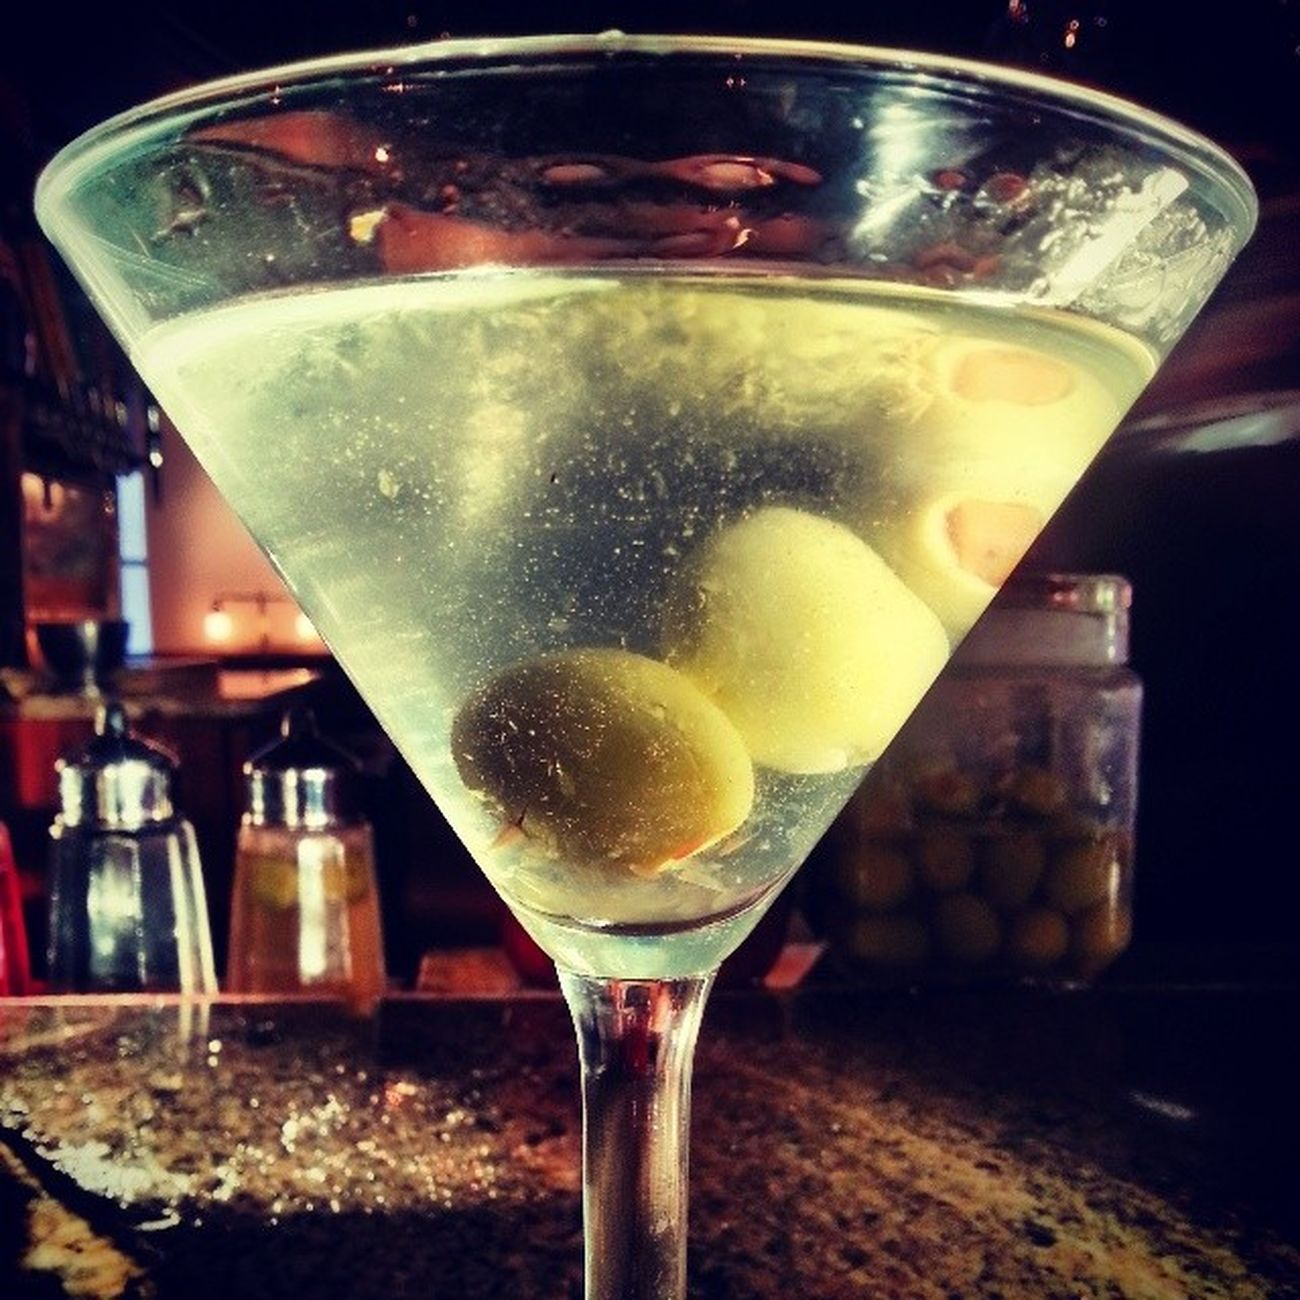 Y'all know what time it is.. It's Martini o'clock!